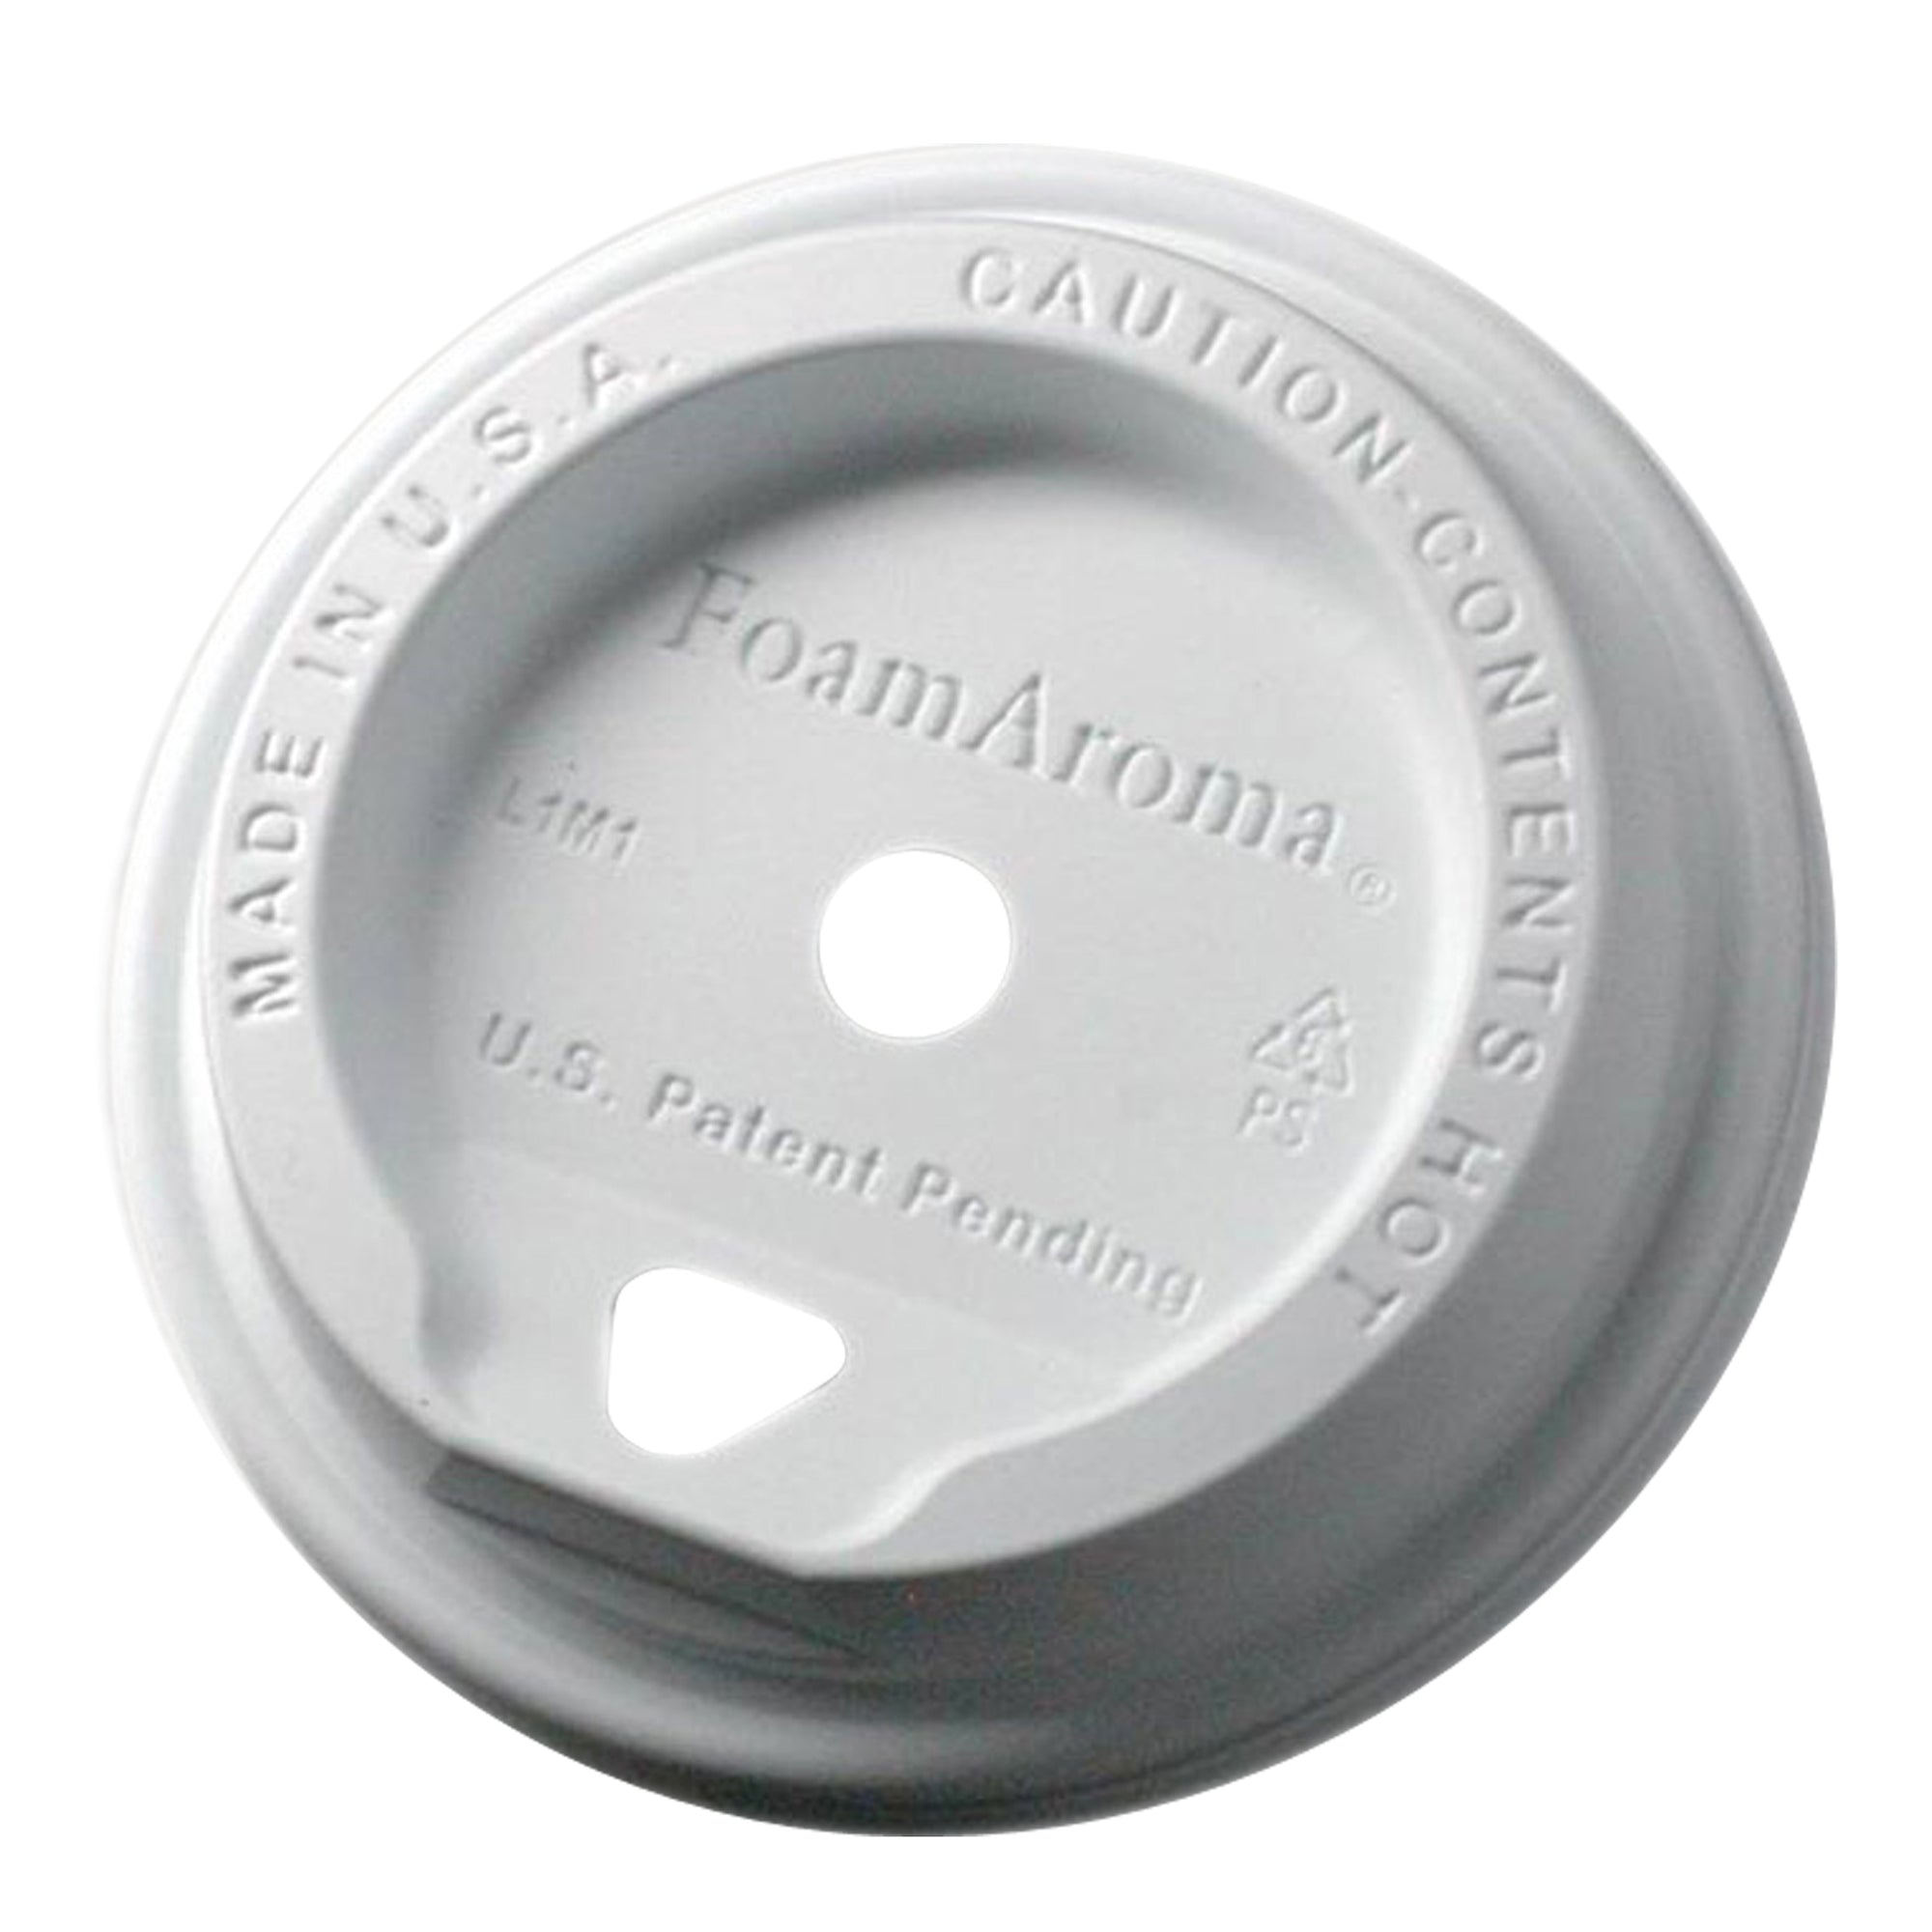 Take Away Foamaroma Lid White 1000pcs - Espresso Gear